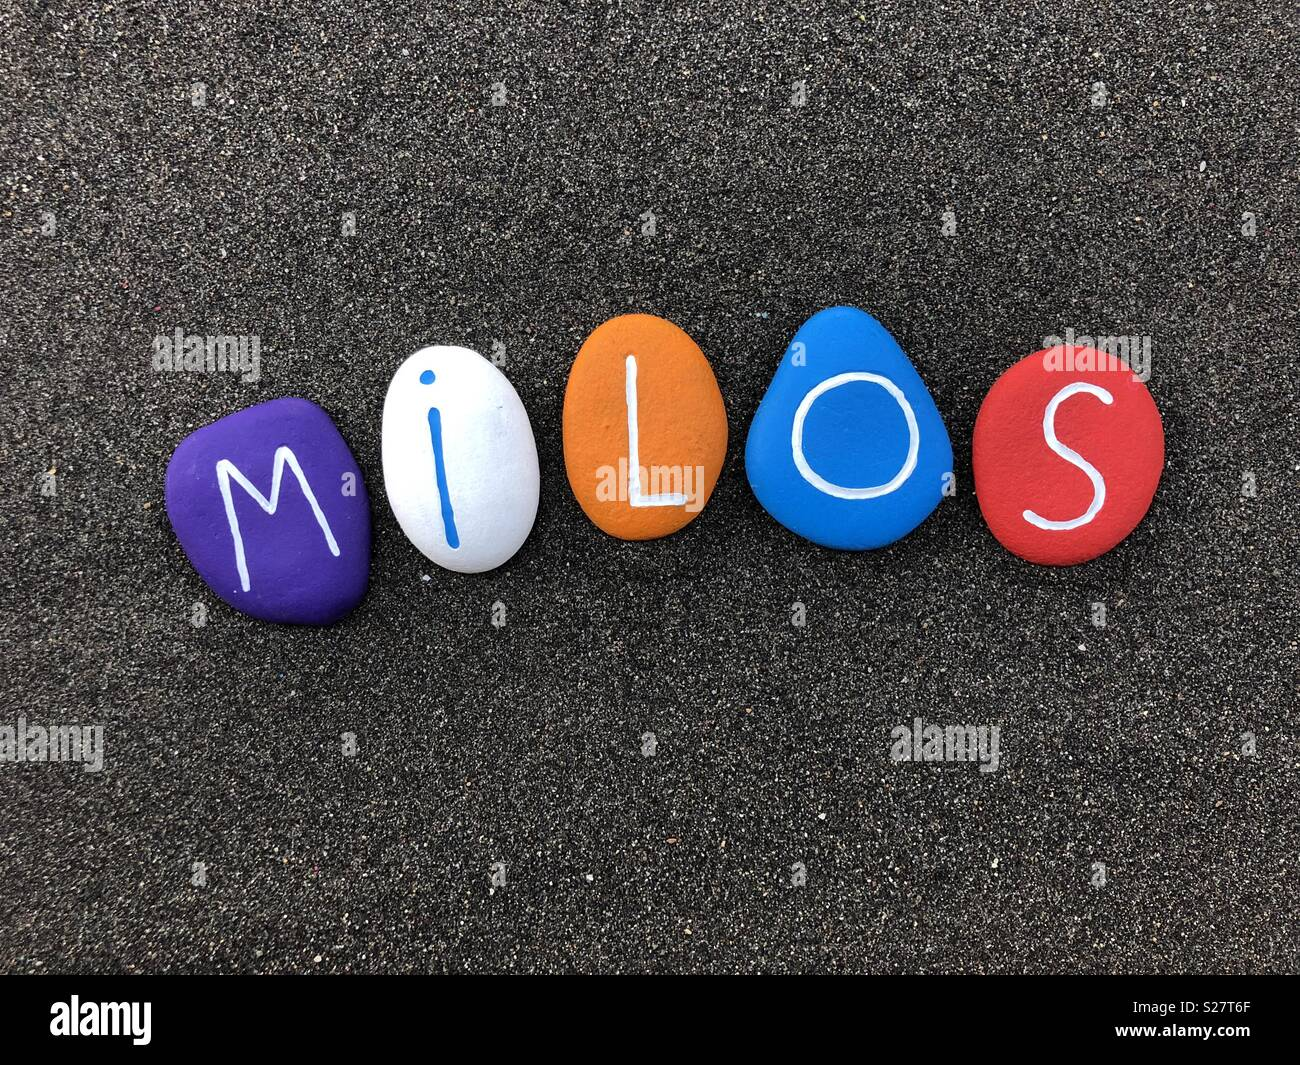 Milos, masculine given name with multi colored painted stone letters over black volcanic sand - Stock Image